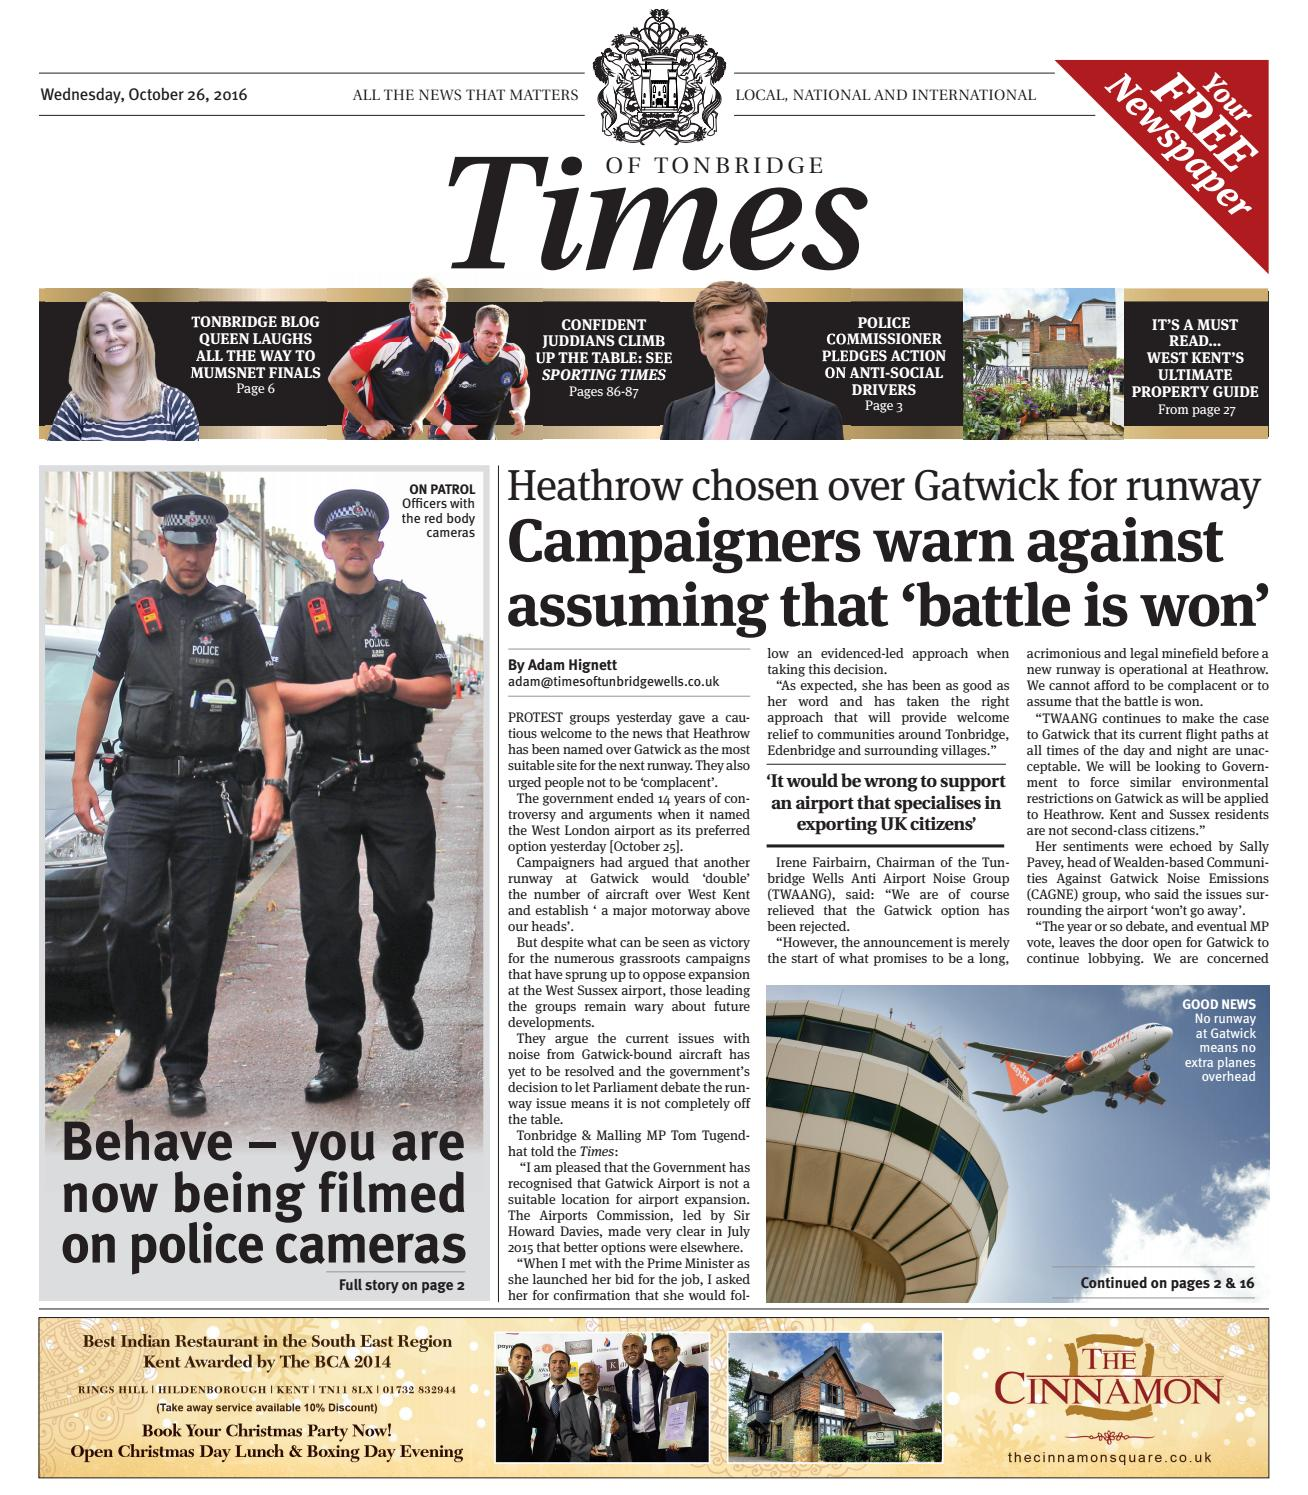 Times of Tonbridge 26th October 2016 by One Media - issuu